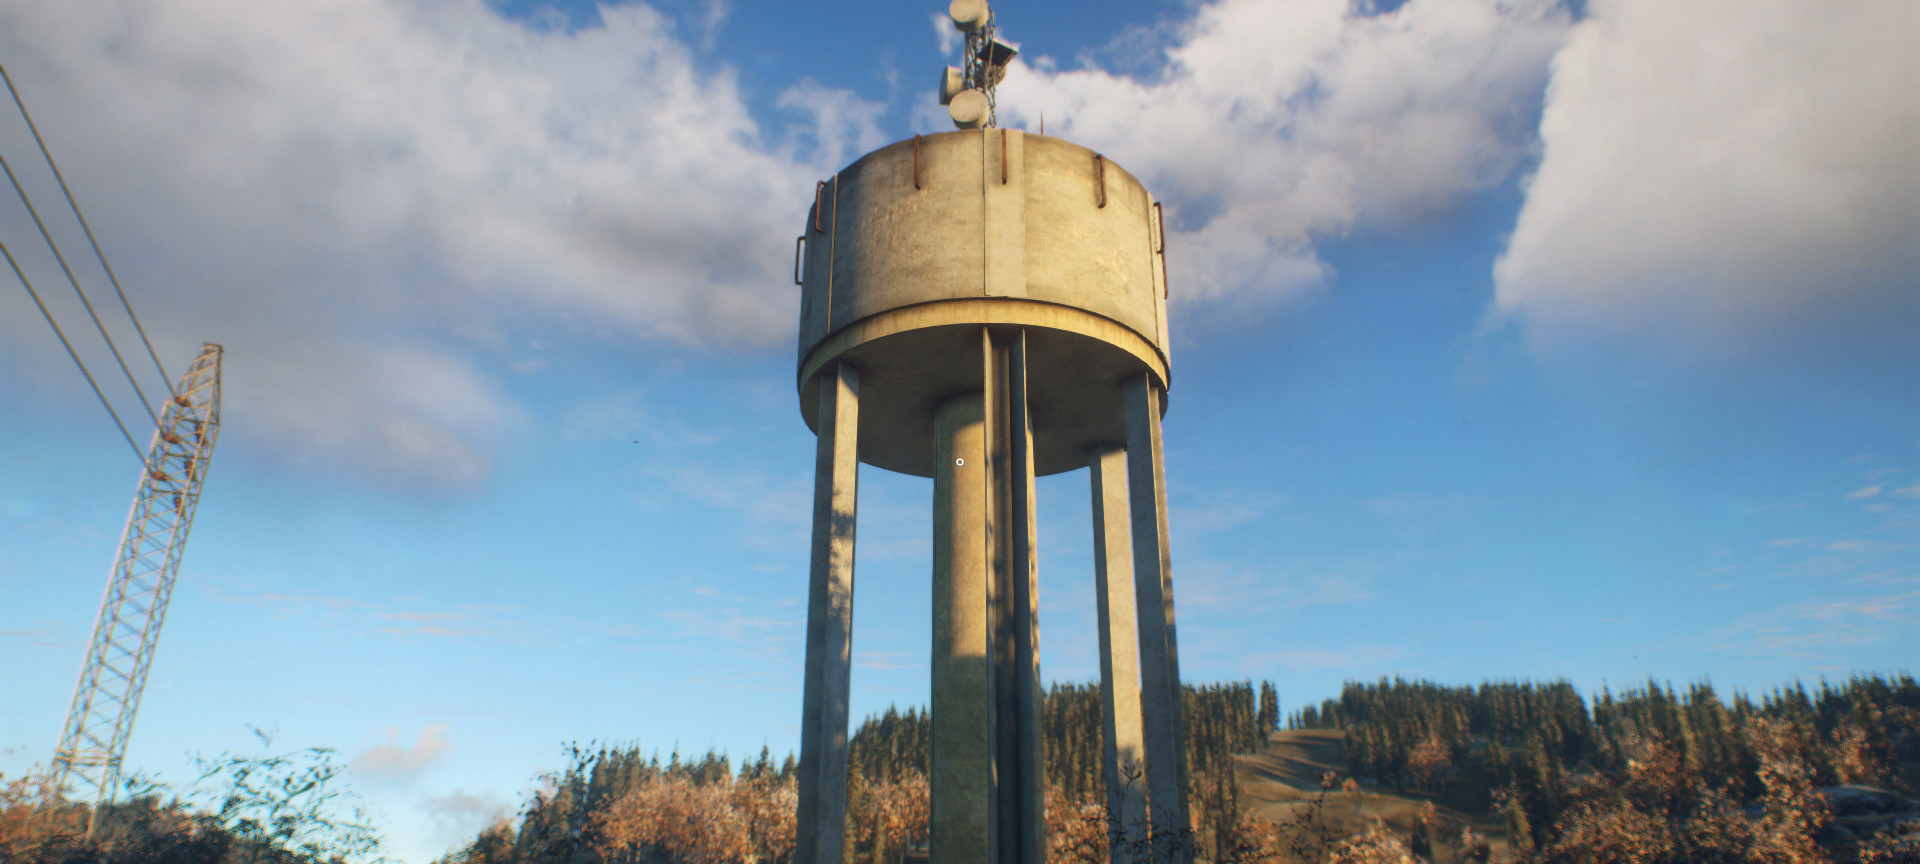 Daniel ketterman water tower 1